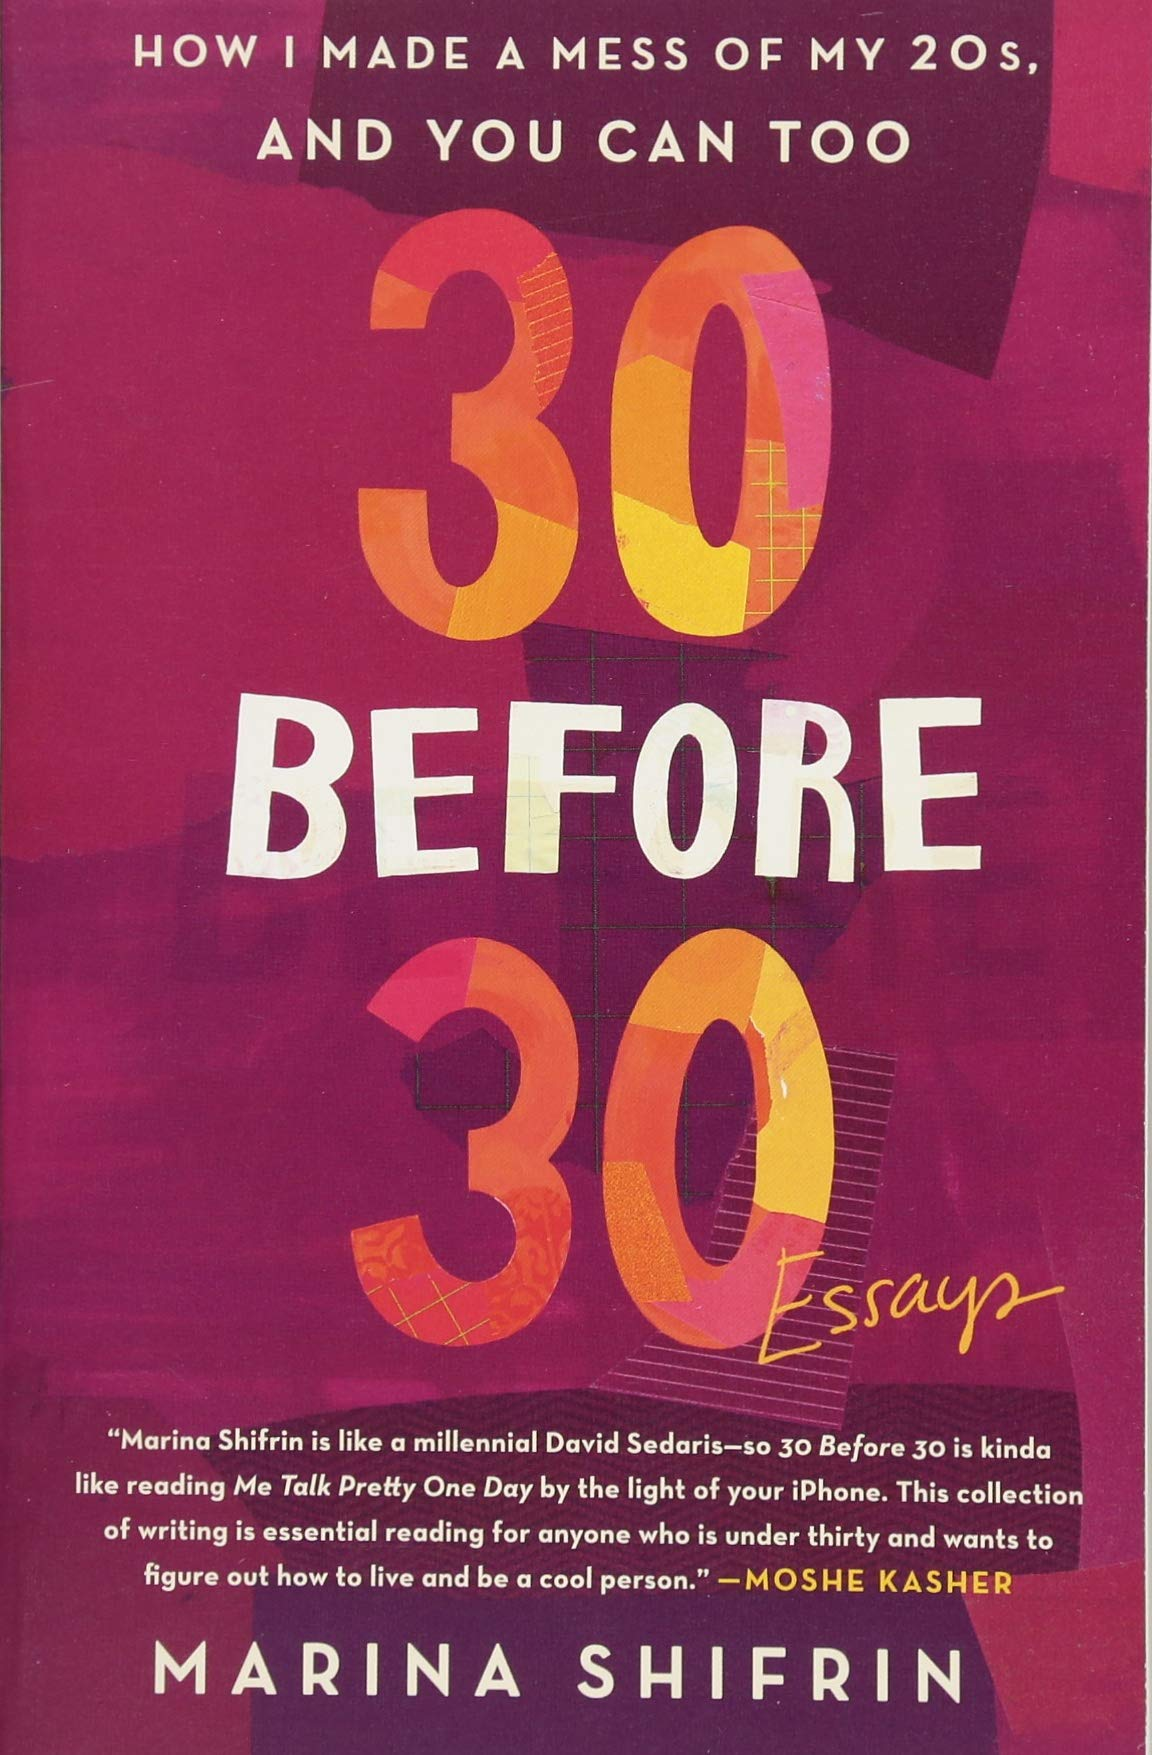 30 Before 30: How I Made a Mess of My 20s, and You Can Too: Essays